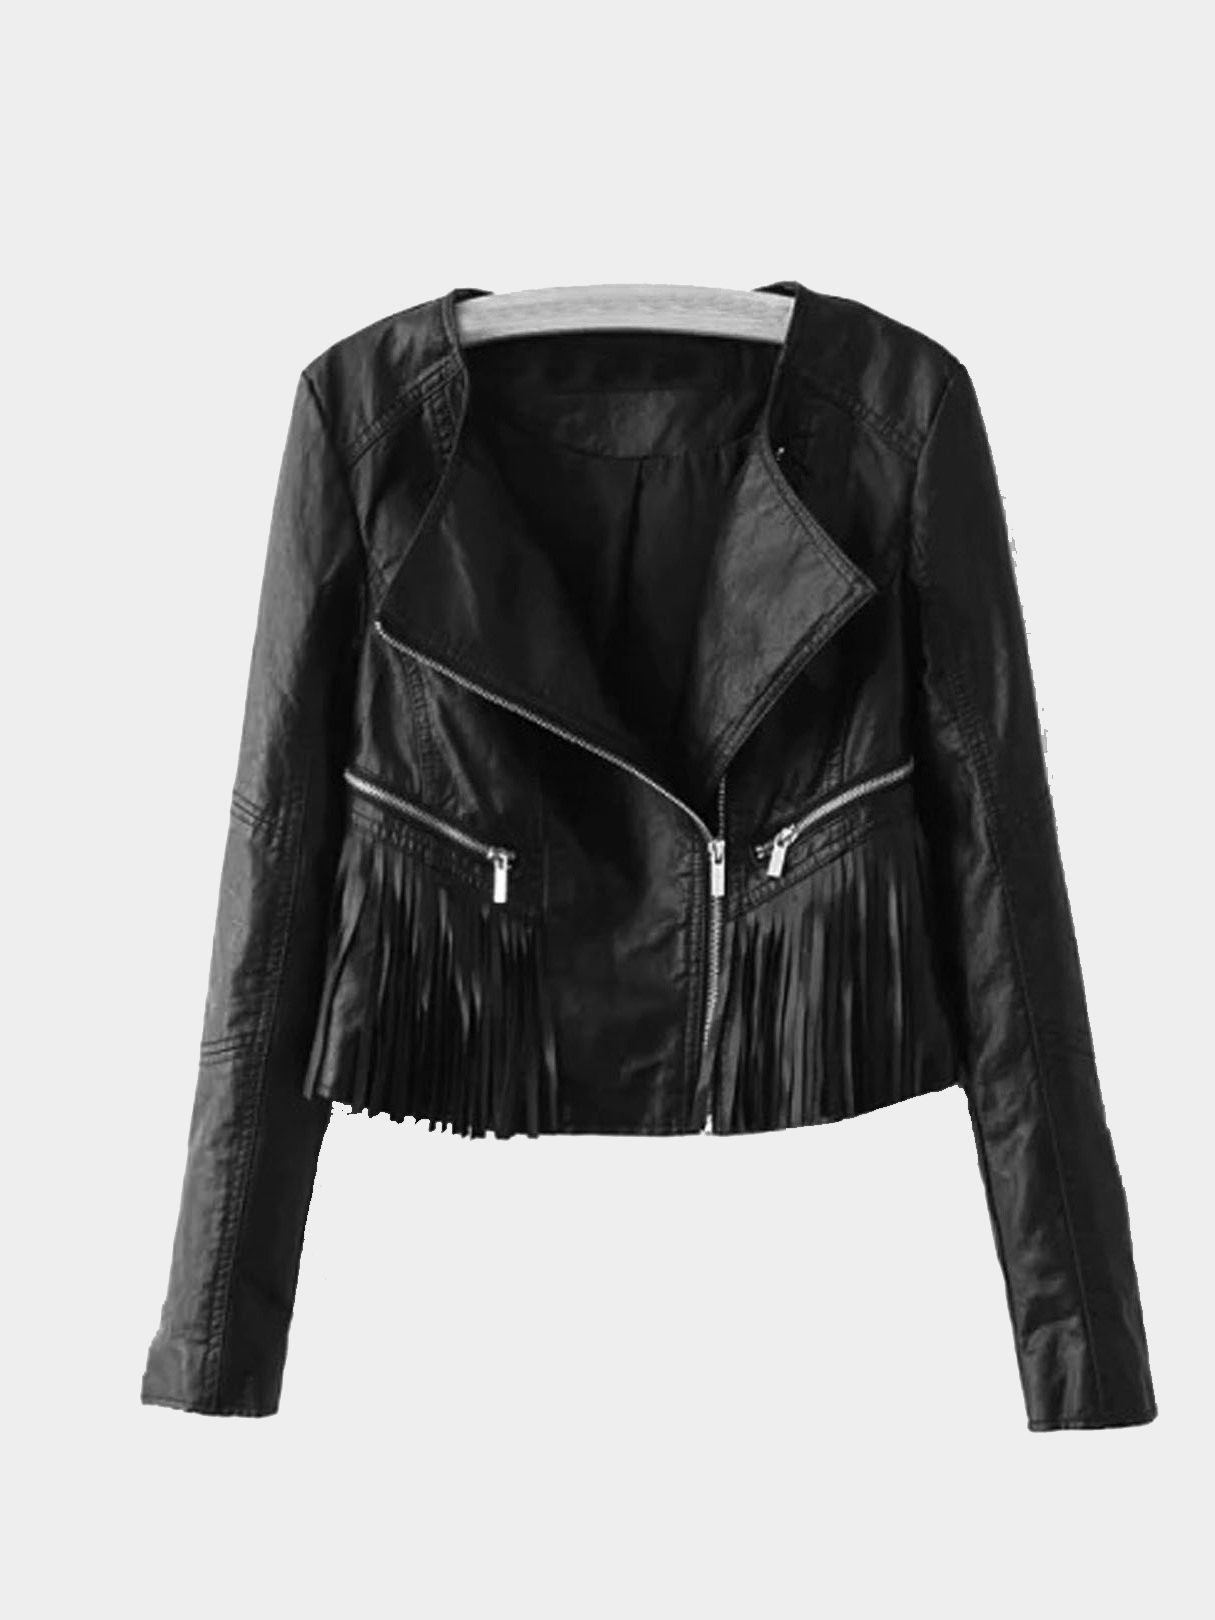 Cropped Leather Biker Jacket with Tassel Details cropped leather biker jacket with tassel details